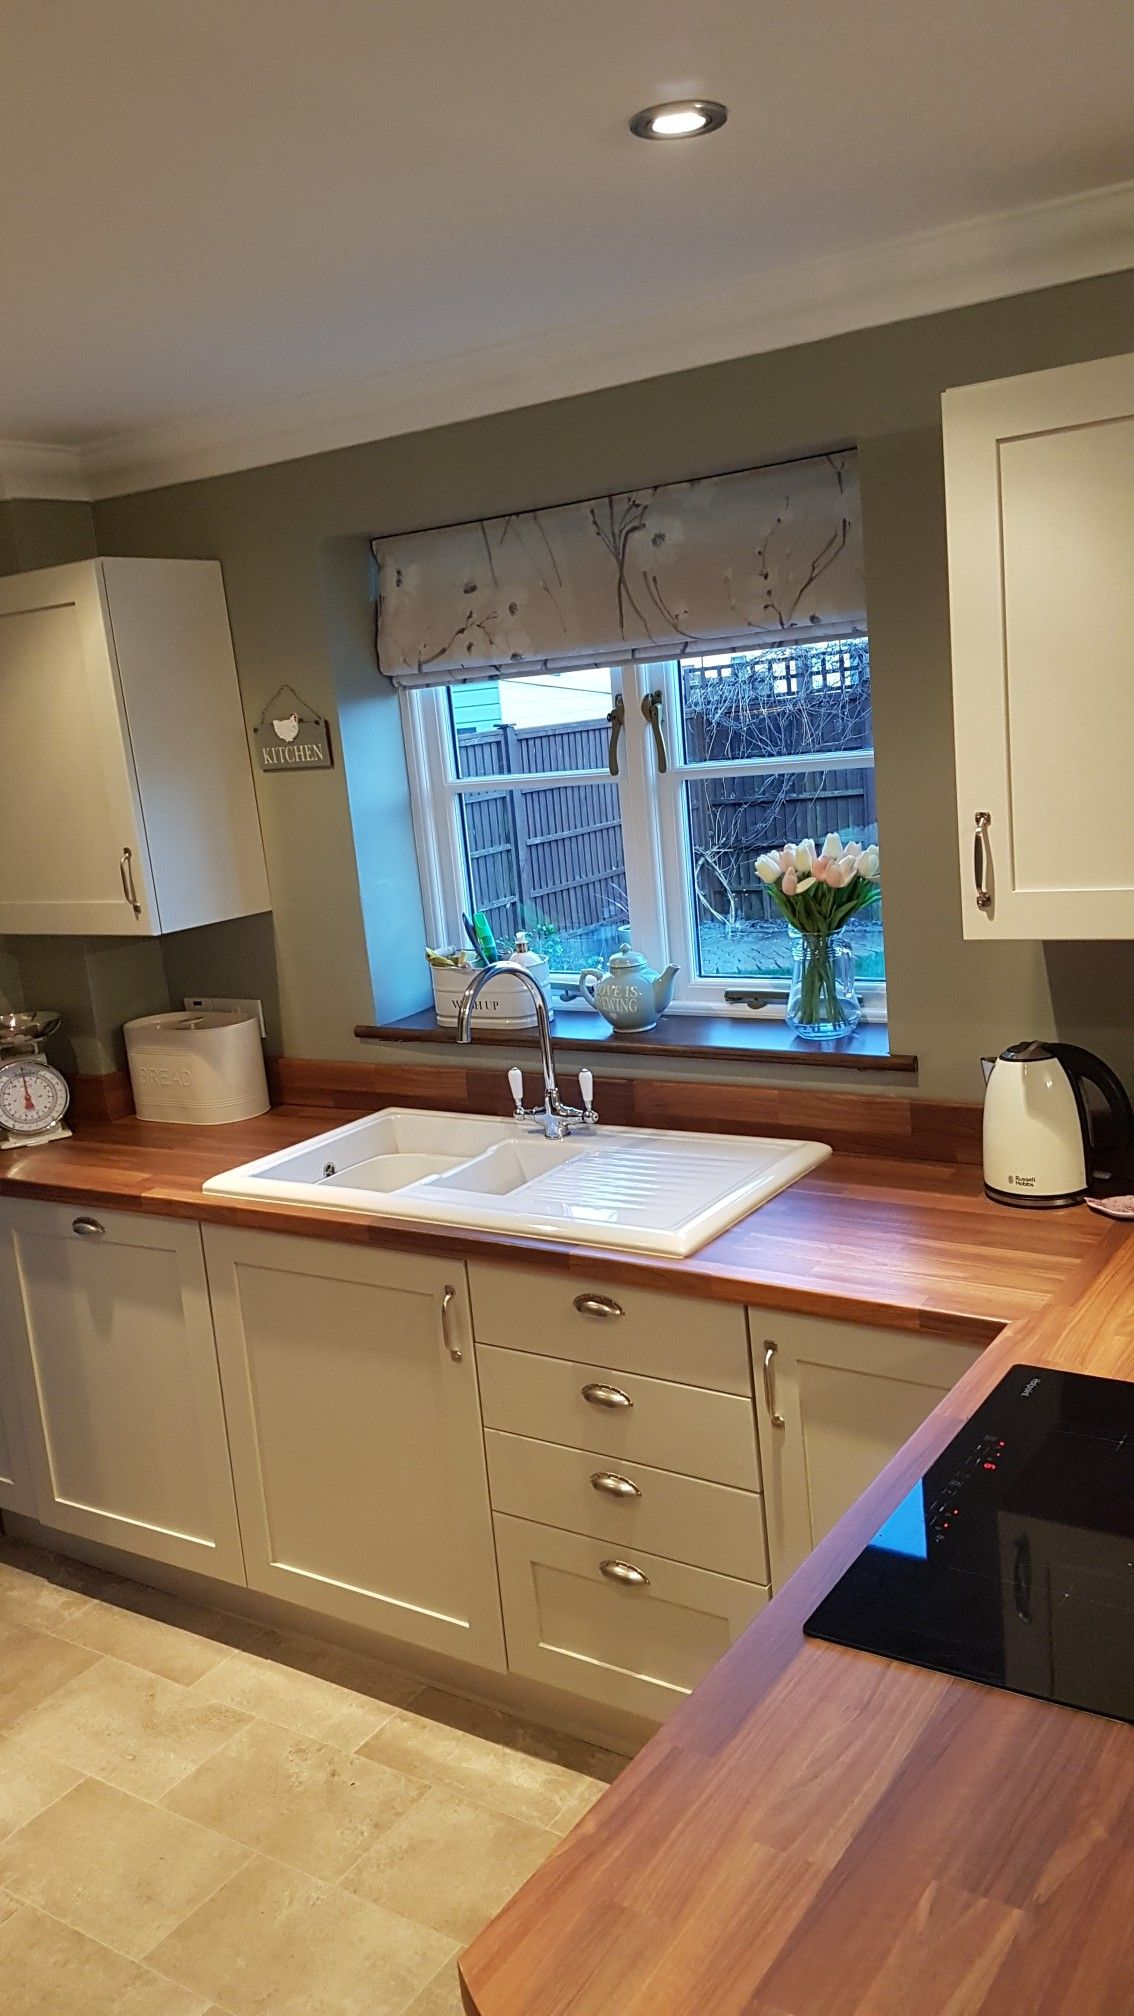 Best Pin By Becky Milton On 15 Eastwick Barton Grey Kitchens 640 x 480